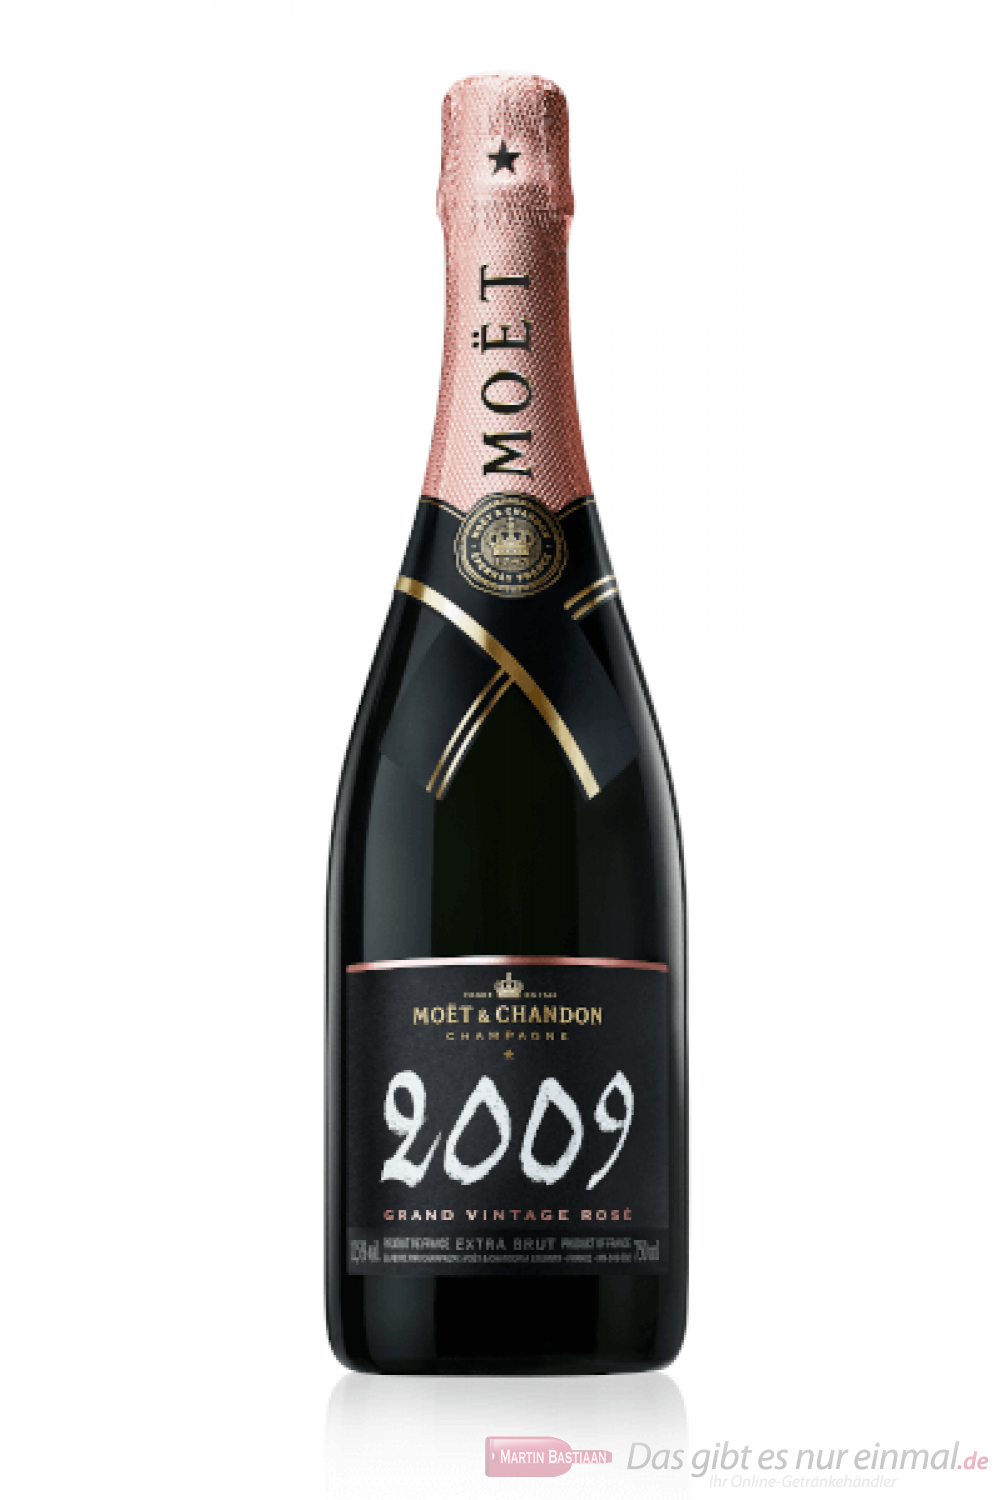 Moet & Chandon Champagner Grand Vintage Rosé 2009